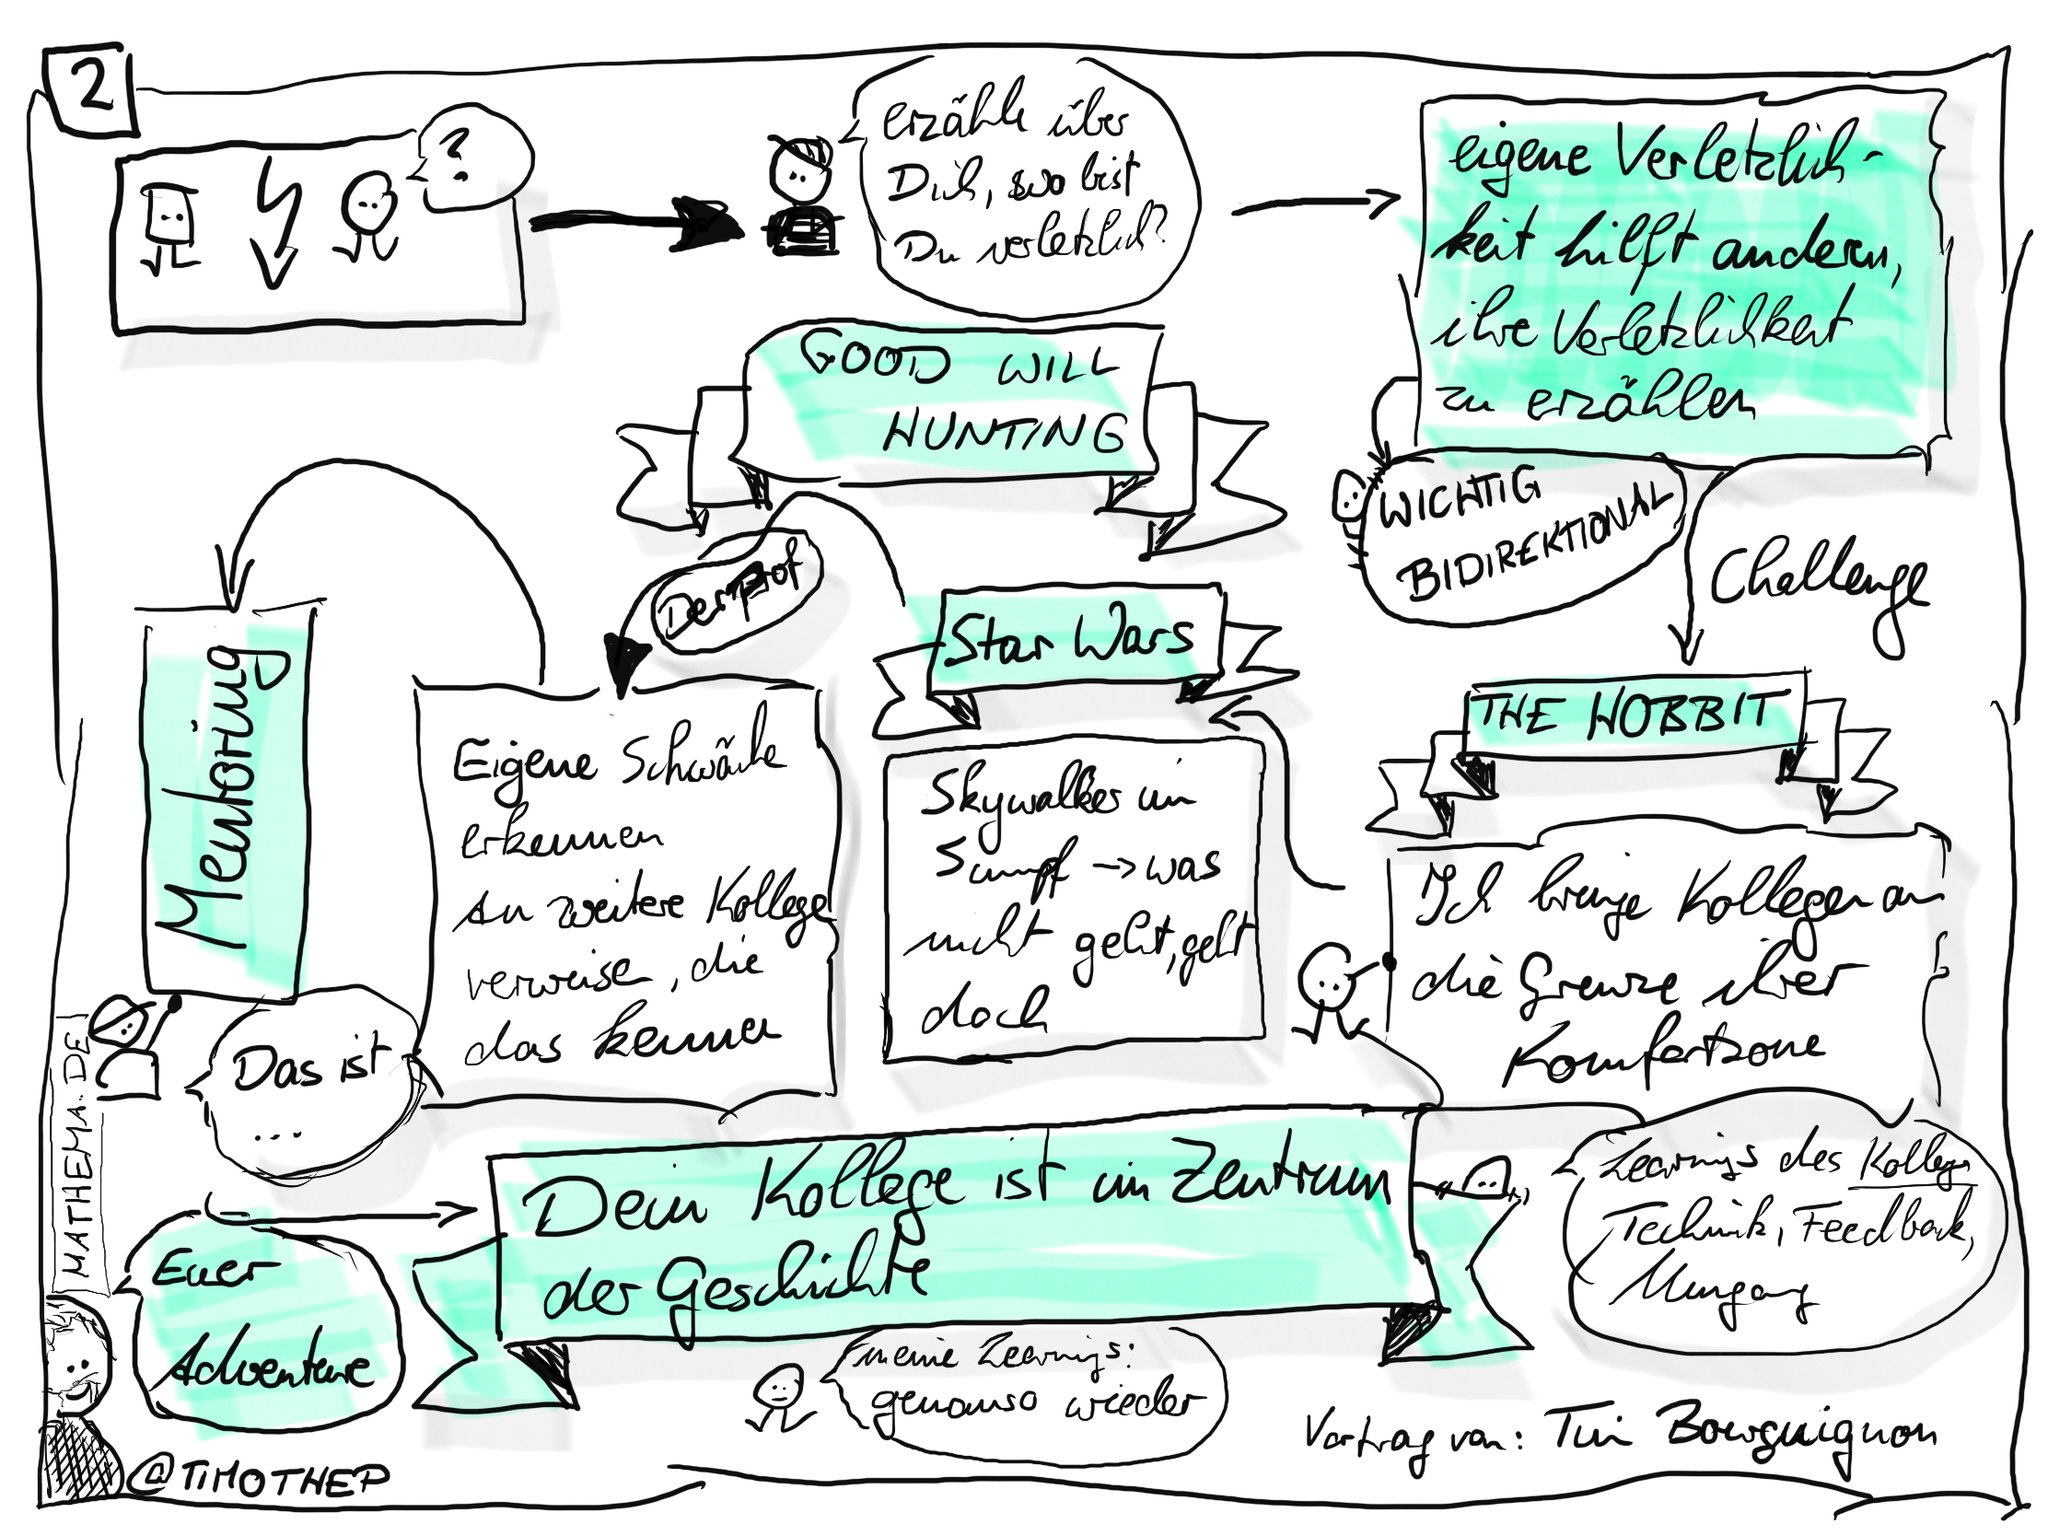 Sketchnote of the second half of the talk